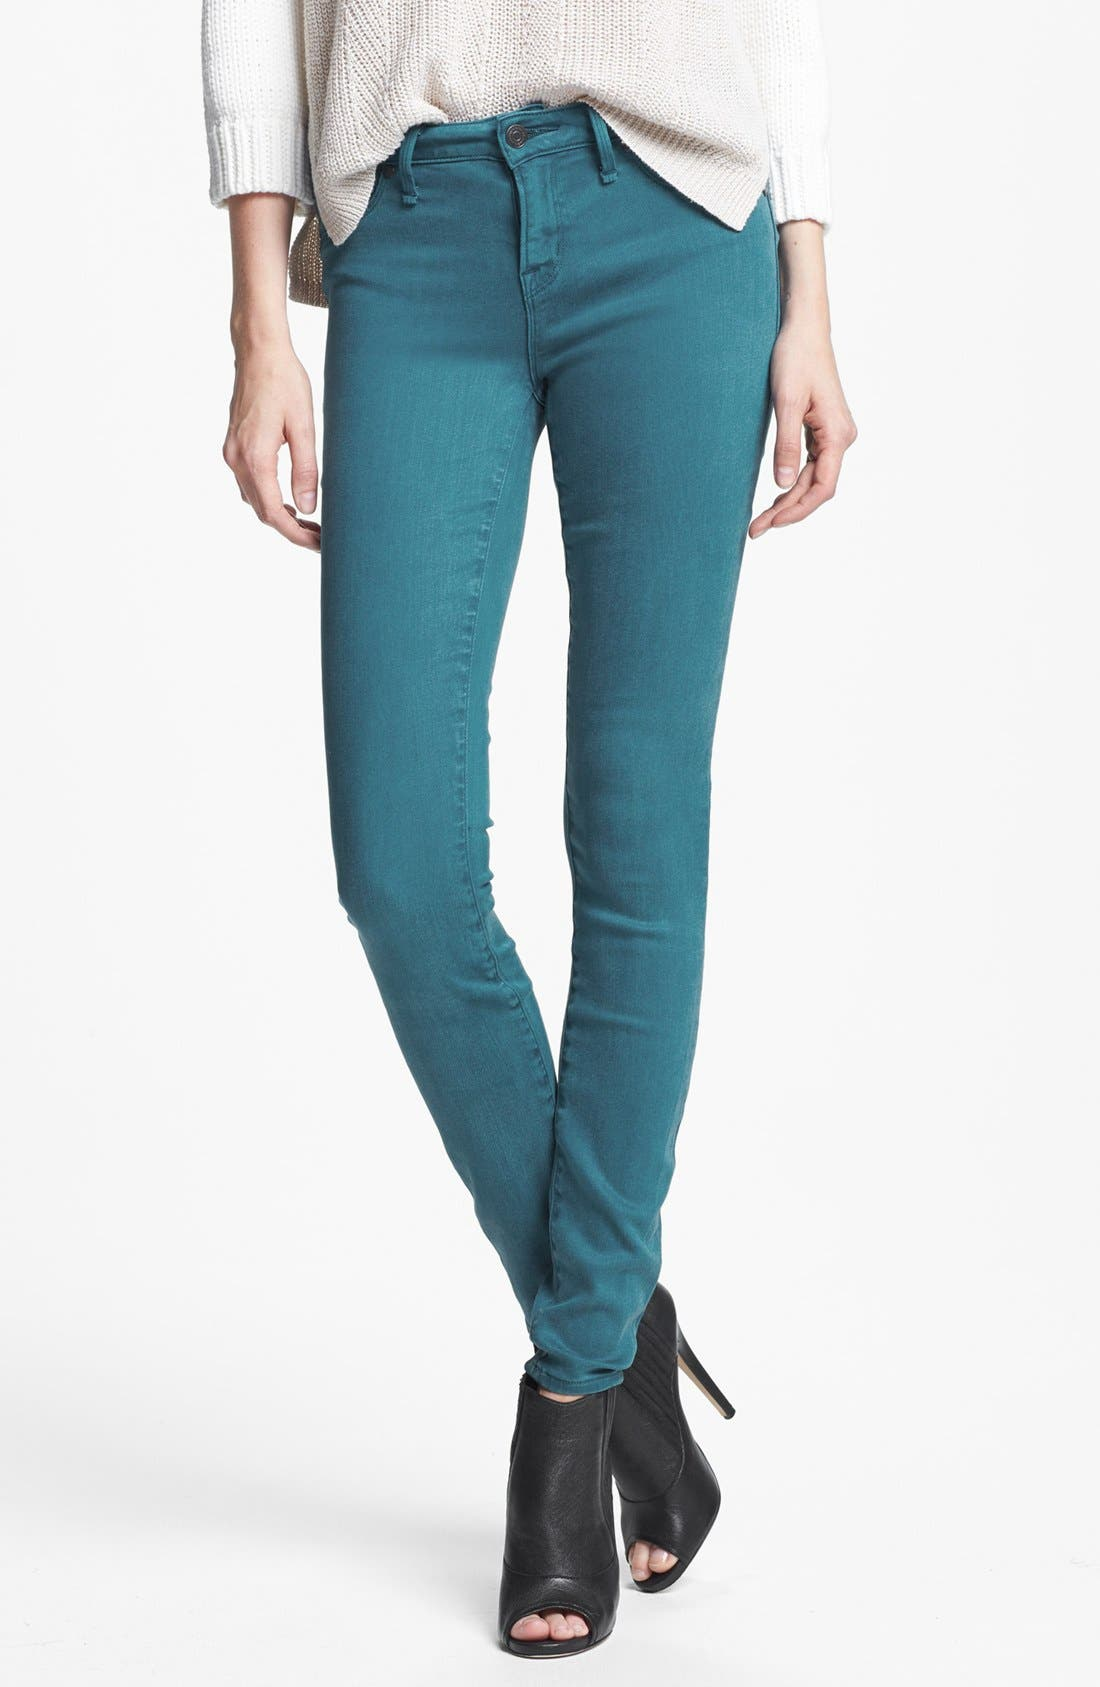 'Stick' Colored Skinny Stretch Jeans,                             Main thumbnail 1, color,                             493